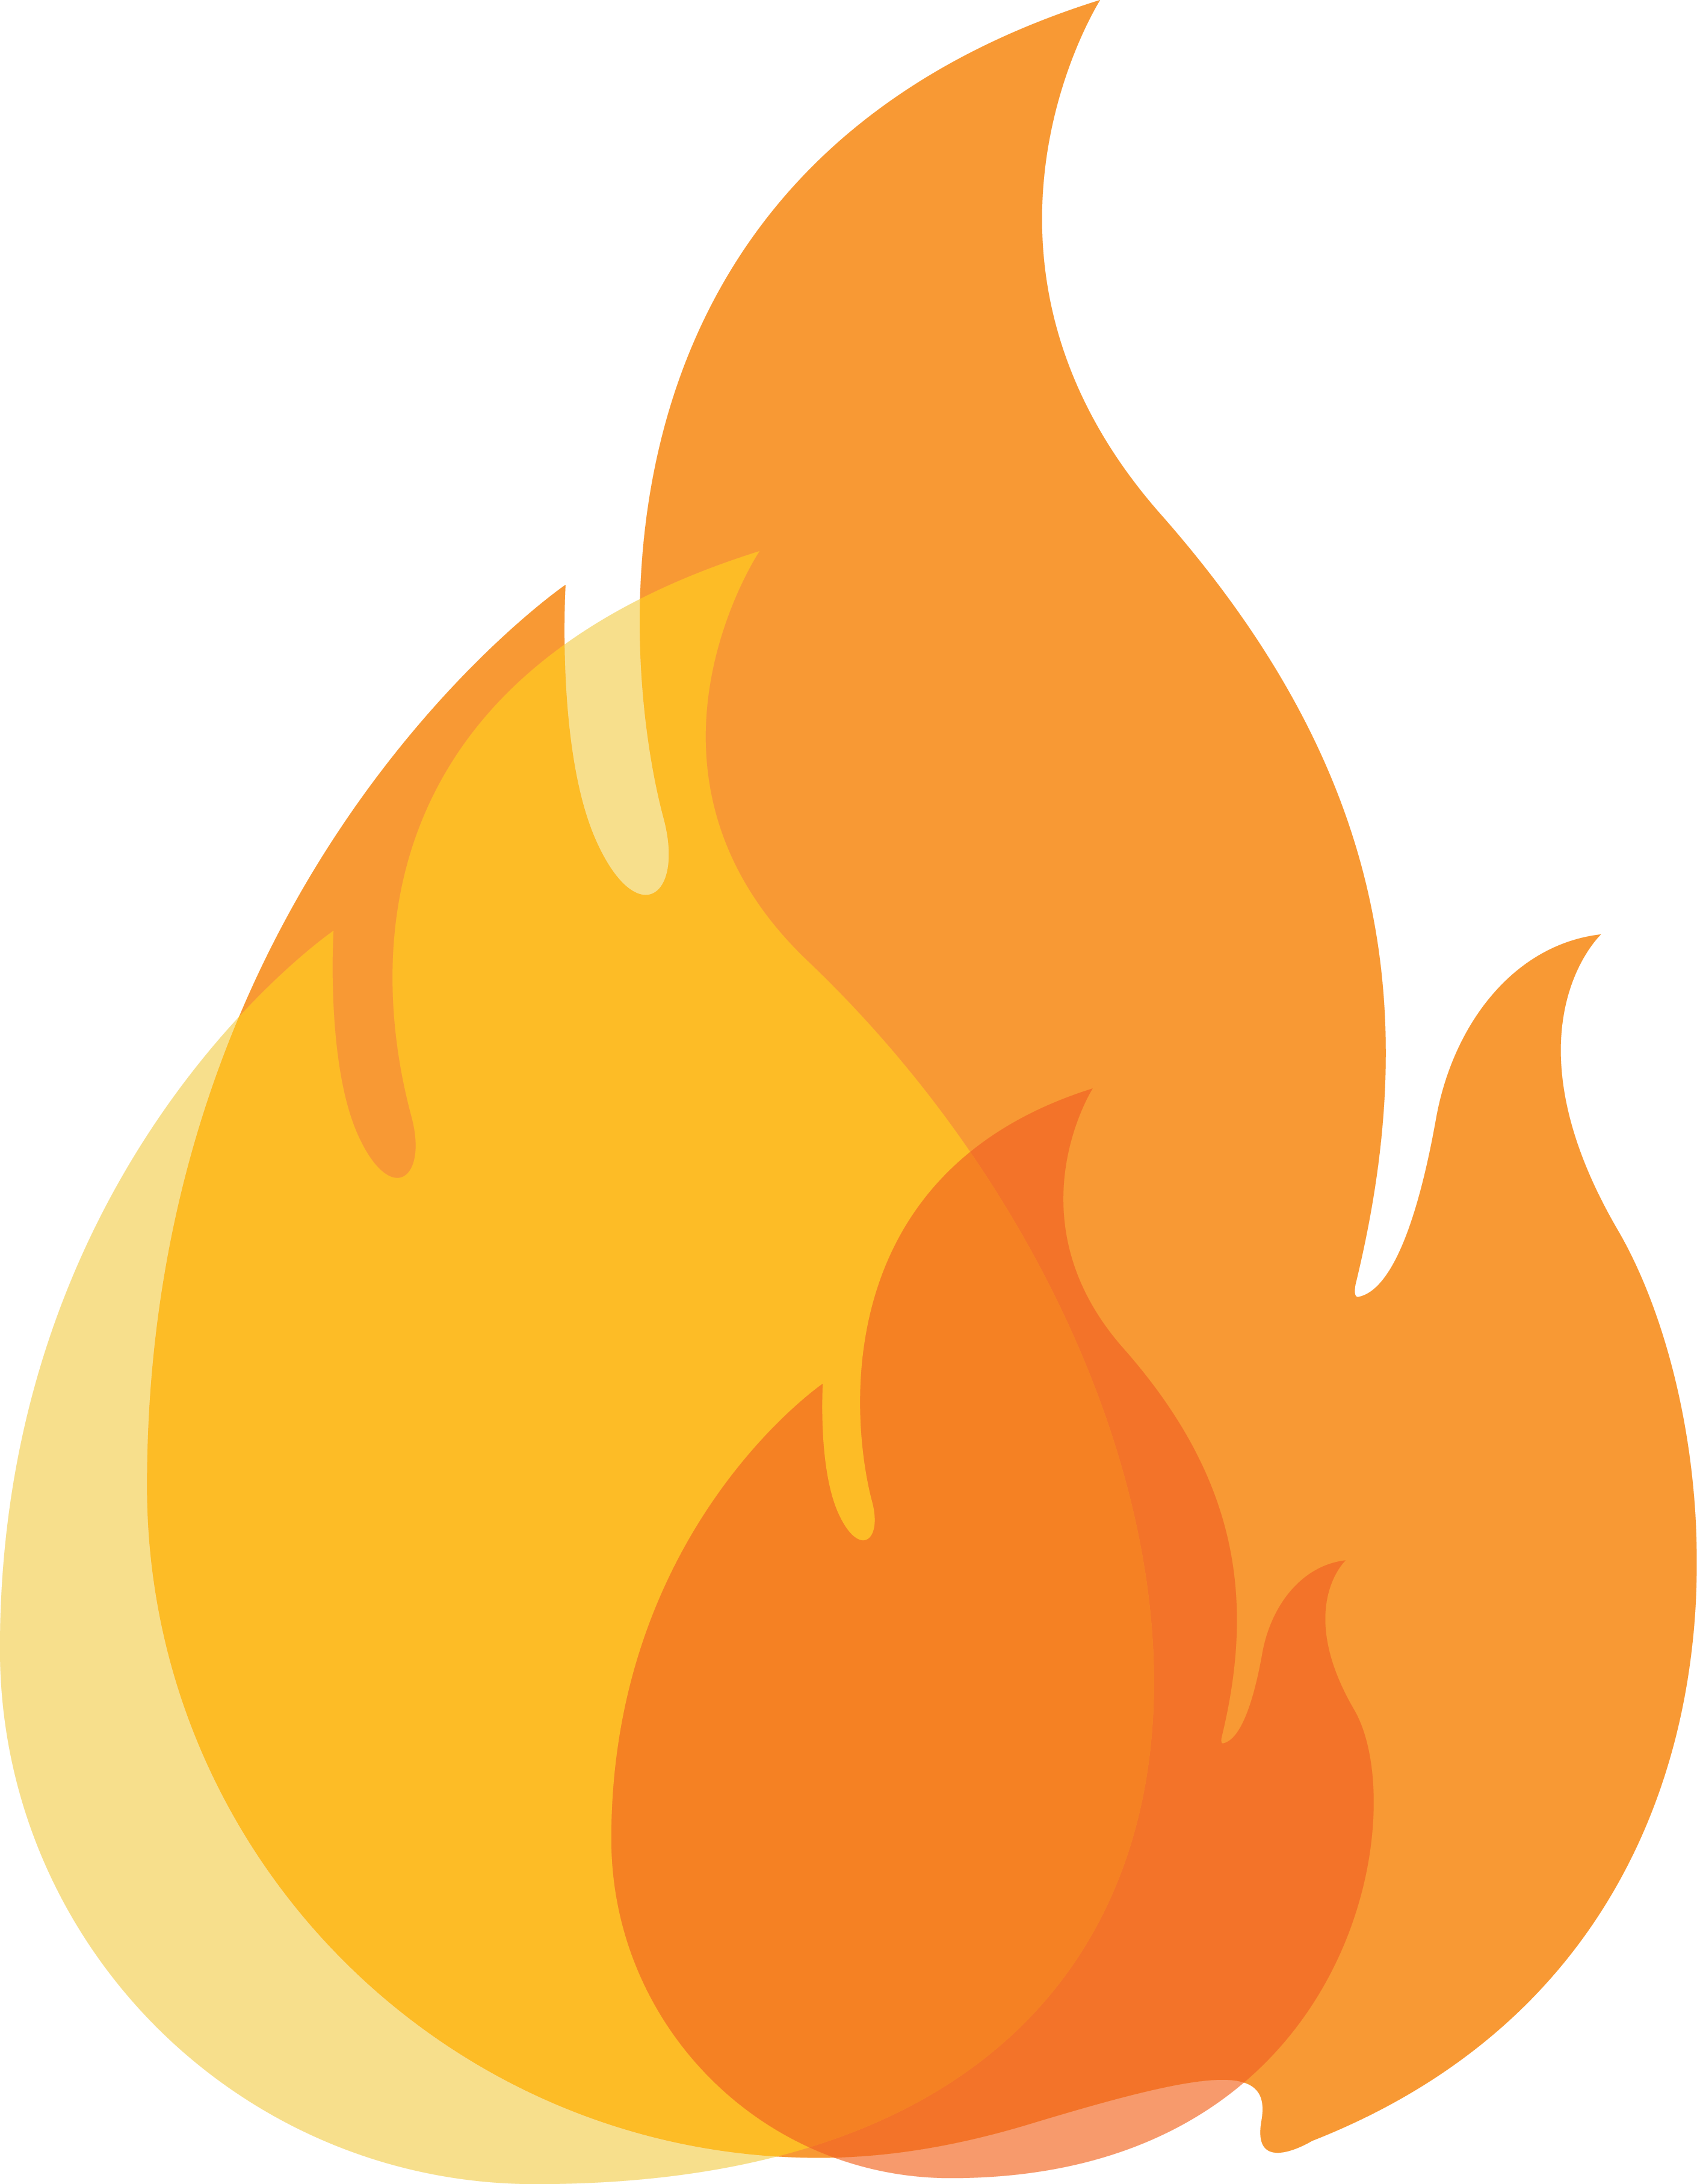 Certainteed performance why is. Fire clipart building